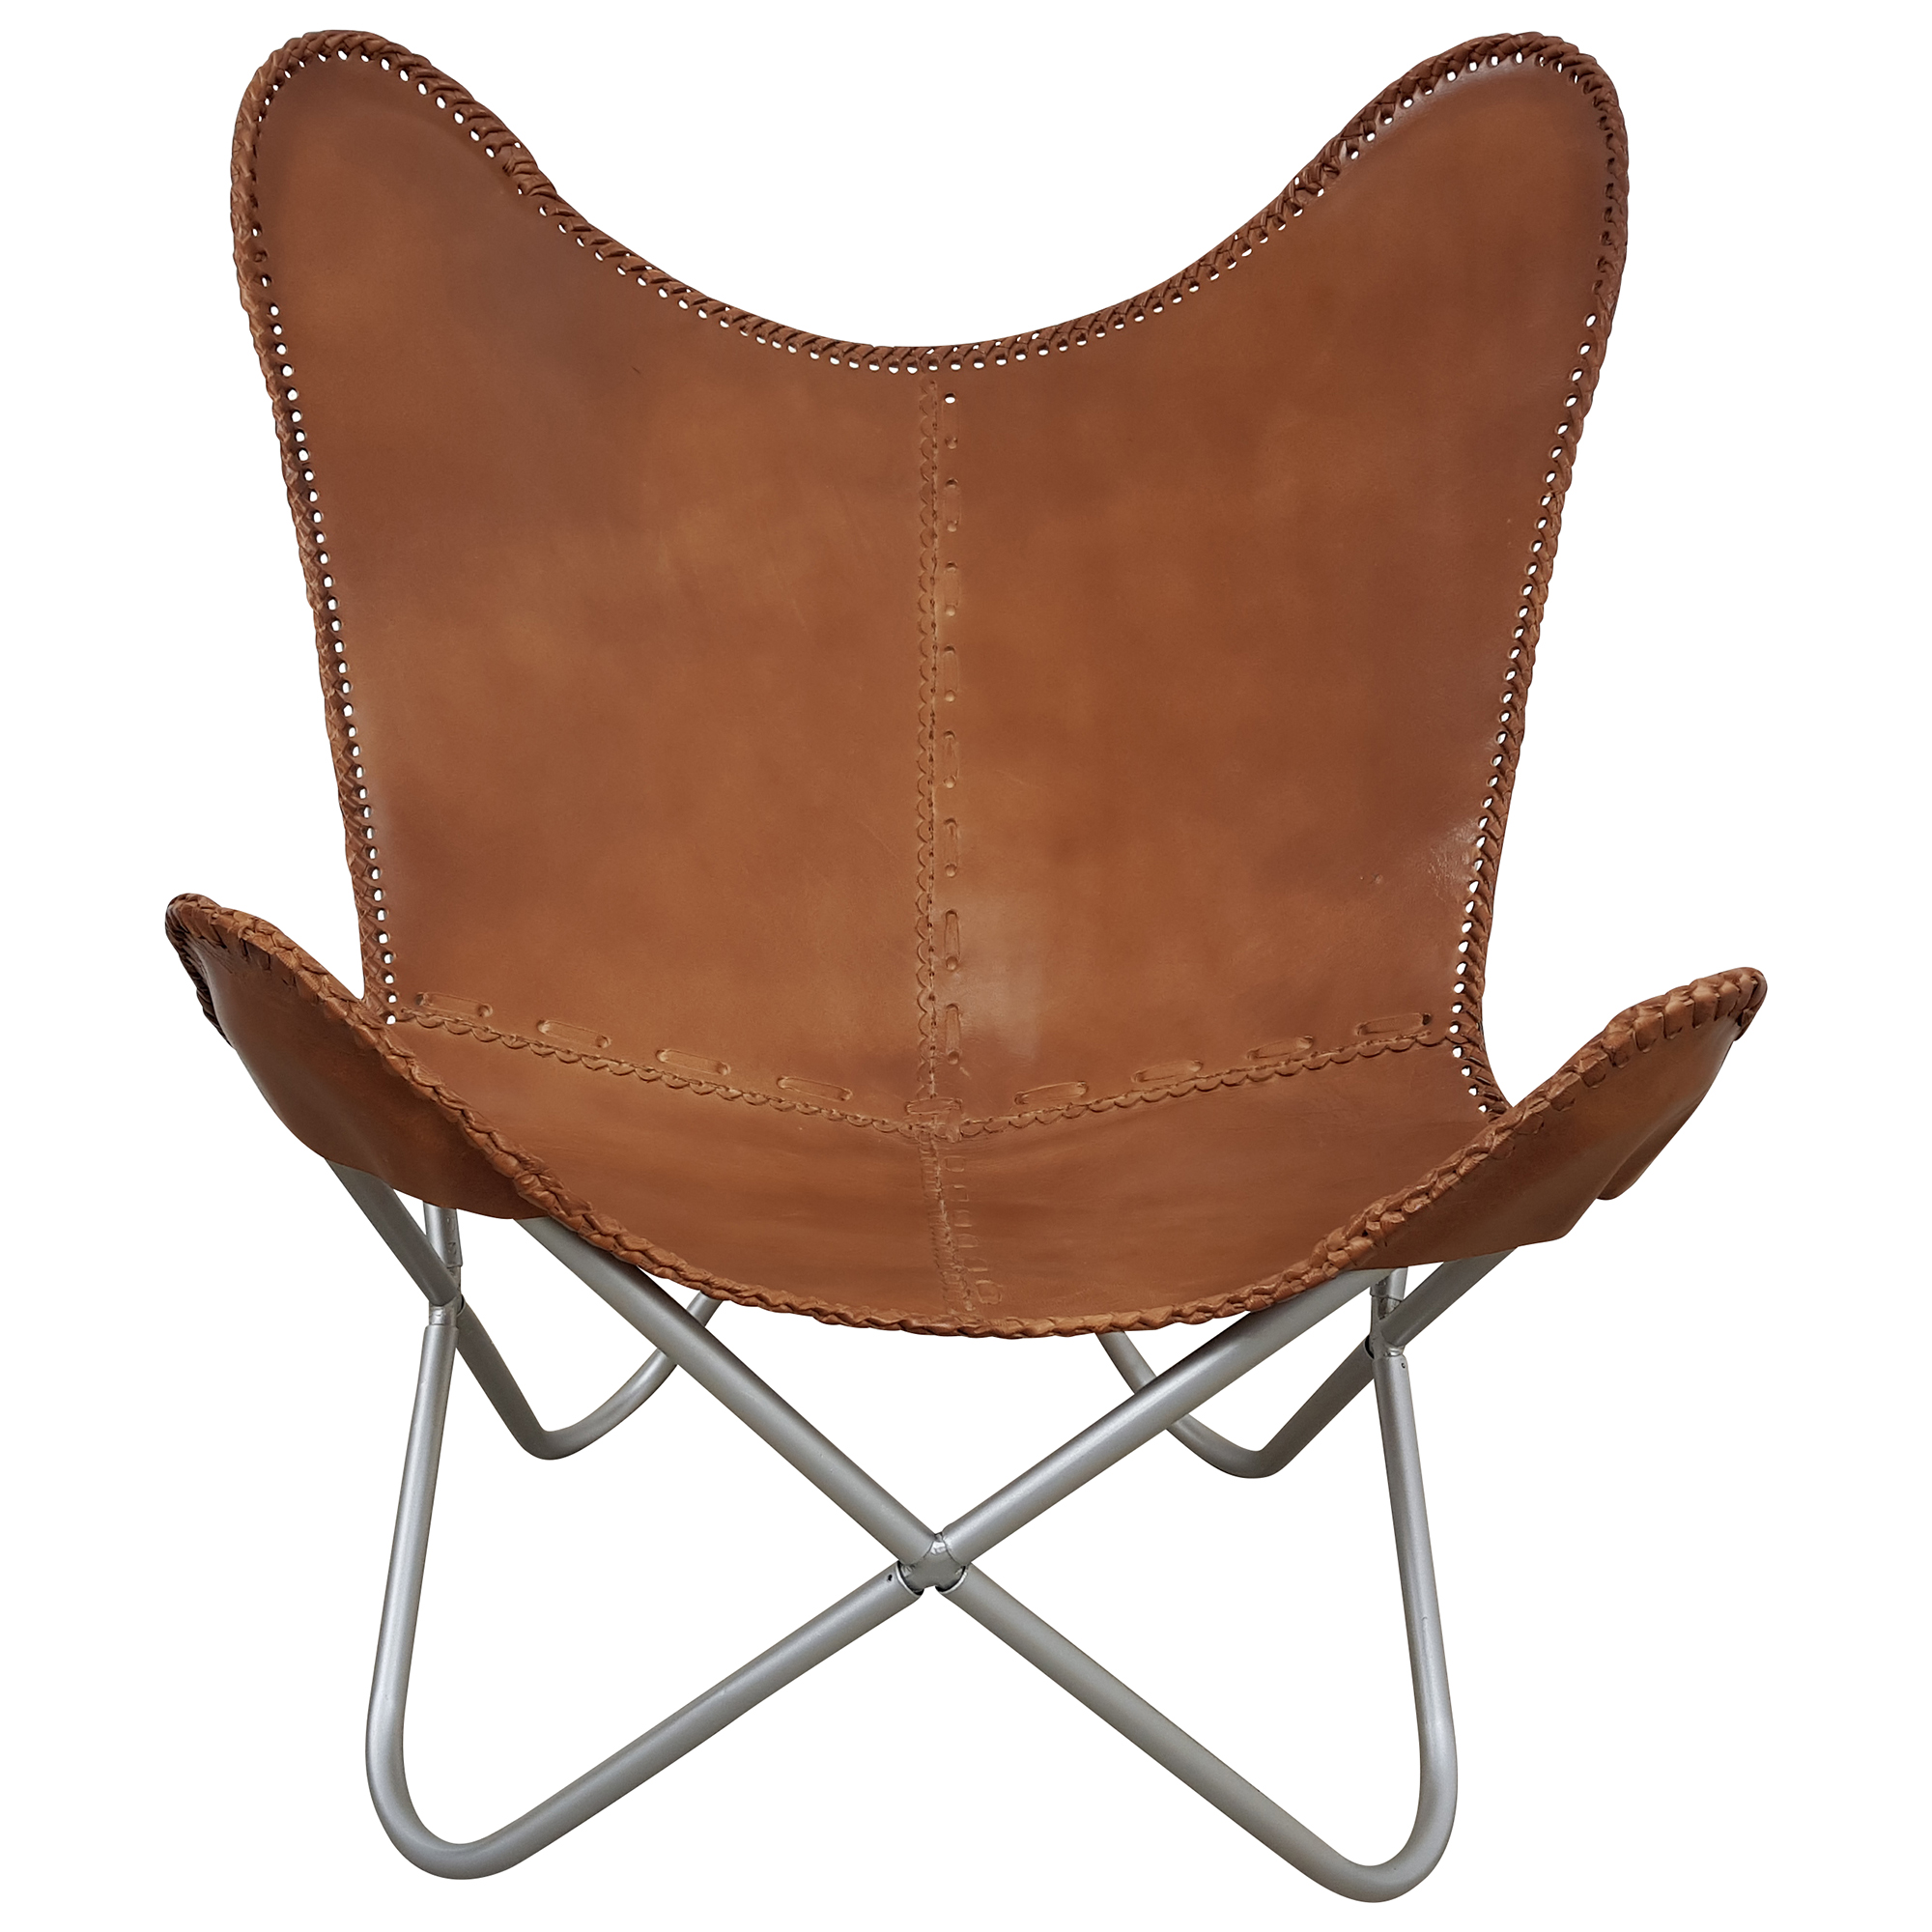 Chair Sessel Butterfly Chair Sessel Vintage Lounge Stuhl Echt Leder Braun Loungesessel